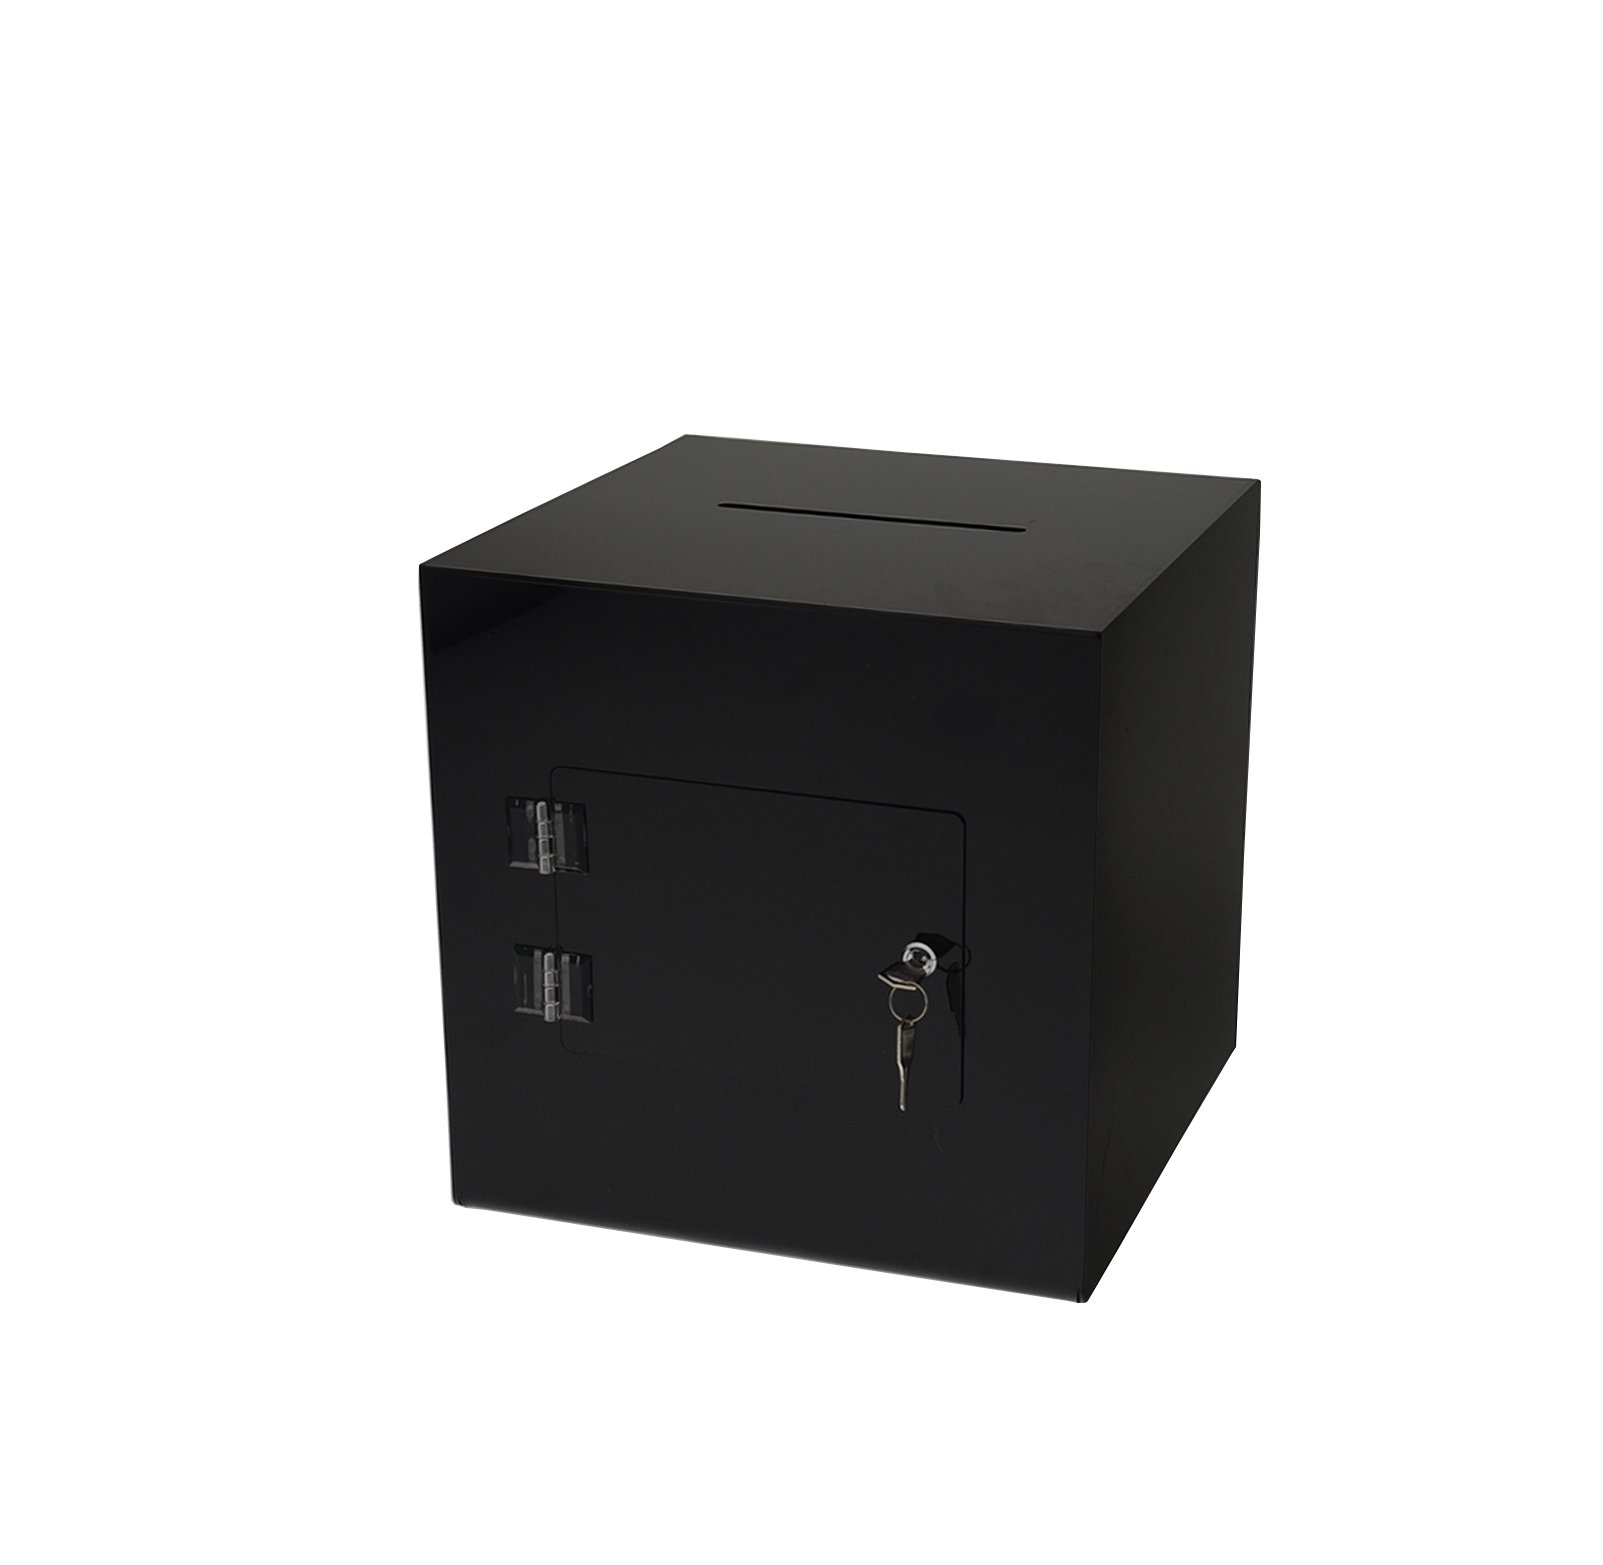 Marketing Holders 11''w x 11''h Enter To Win Raffle Offering Donation Fundraiser Suggestion Ballot Box Comment Collection Contest Cube Black